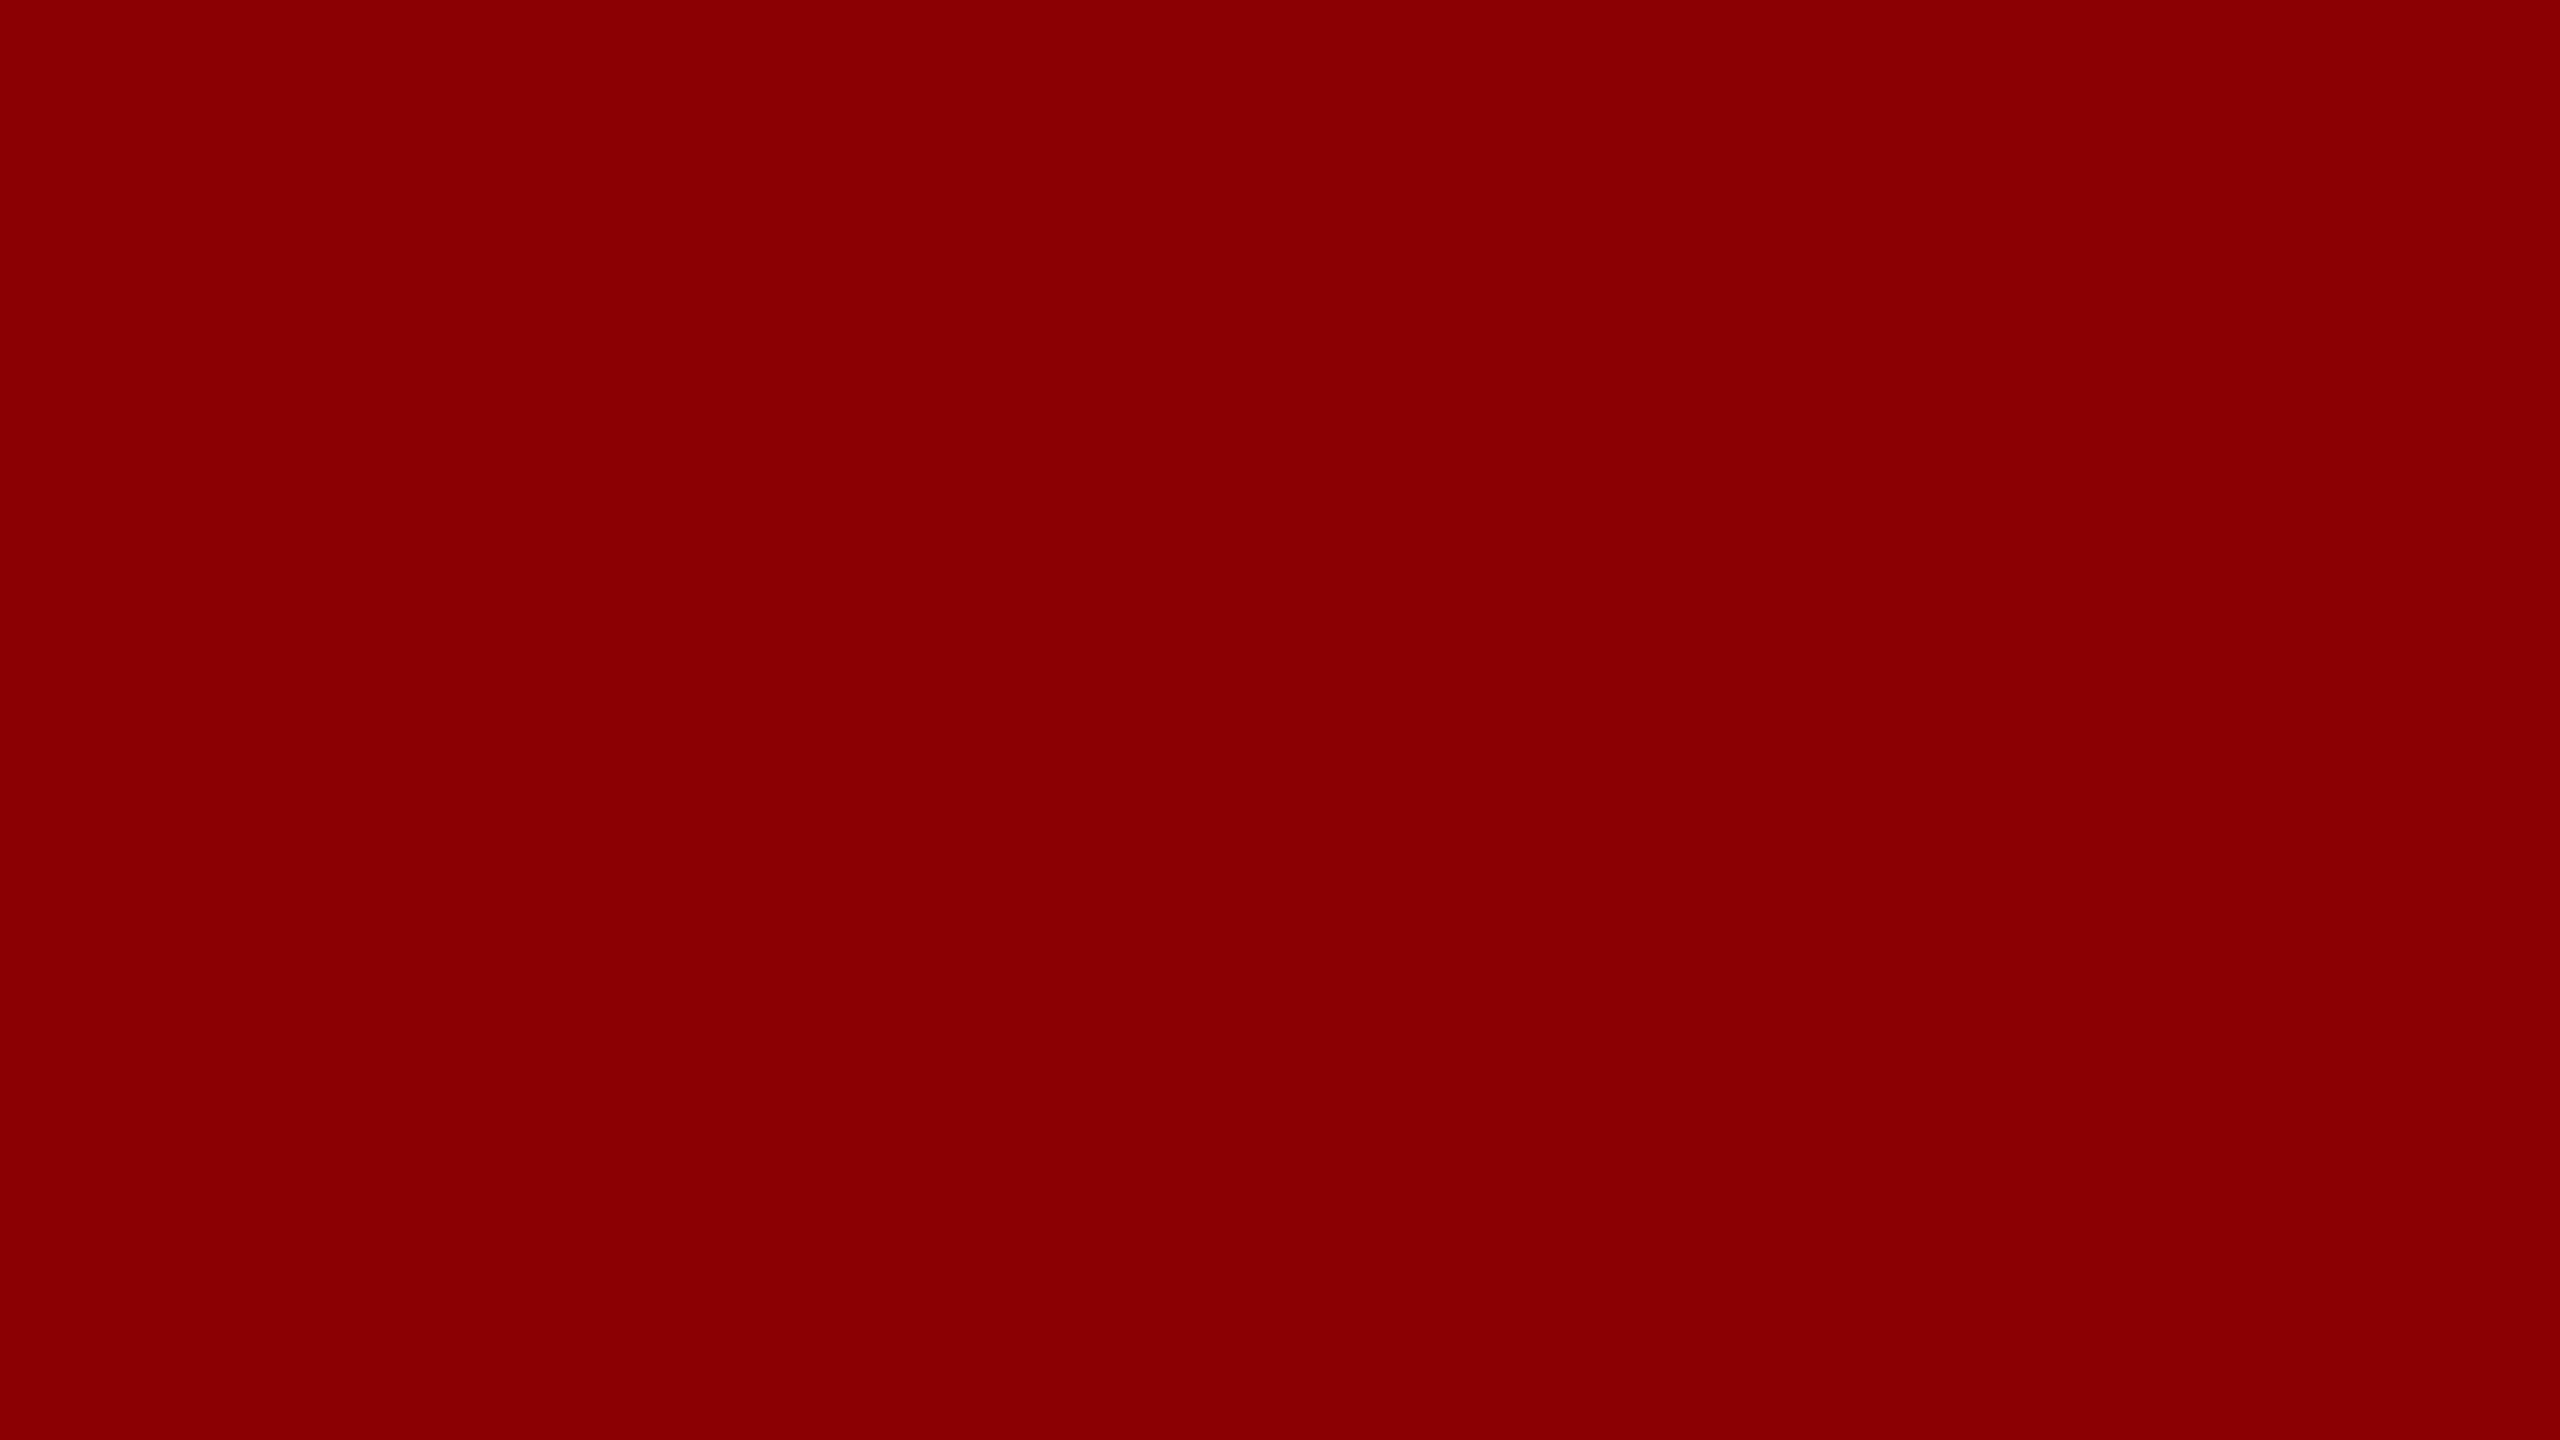 Geography Hd Wallpaper Dark Red Backgrounds Wallpaper Cave